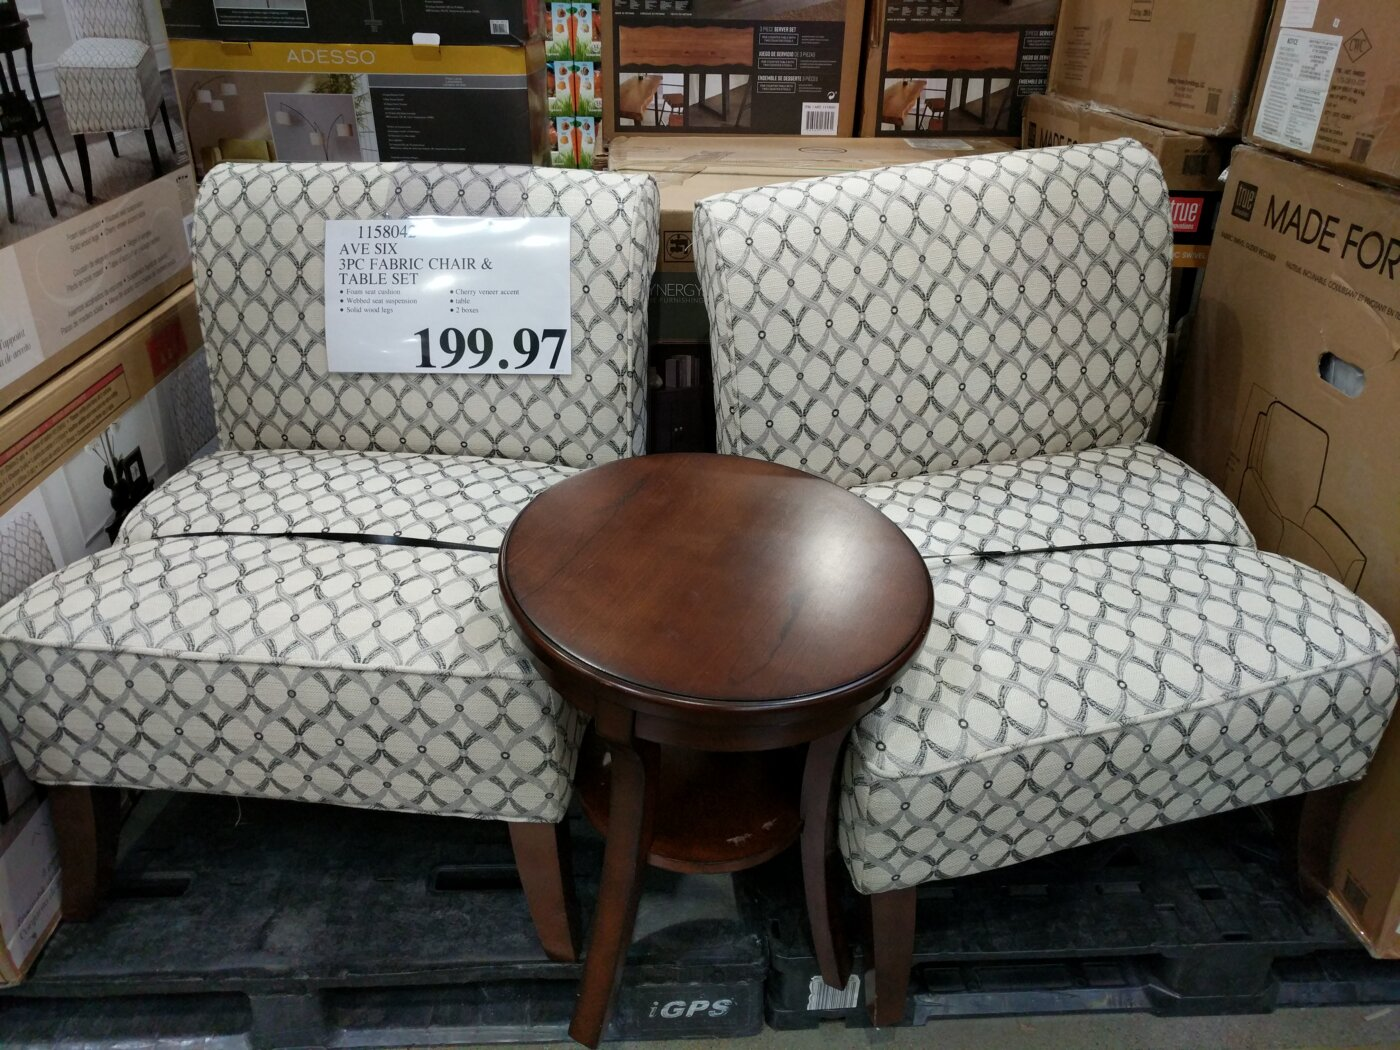 Accent Chairs At Costco Avenue Six 3 Piece Fabric Chair Table Set Costco97